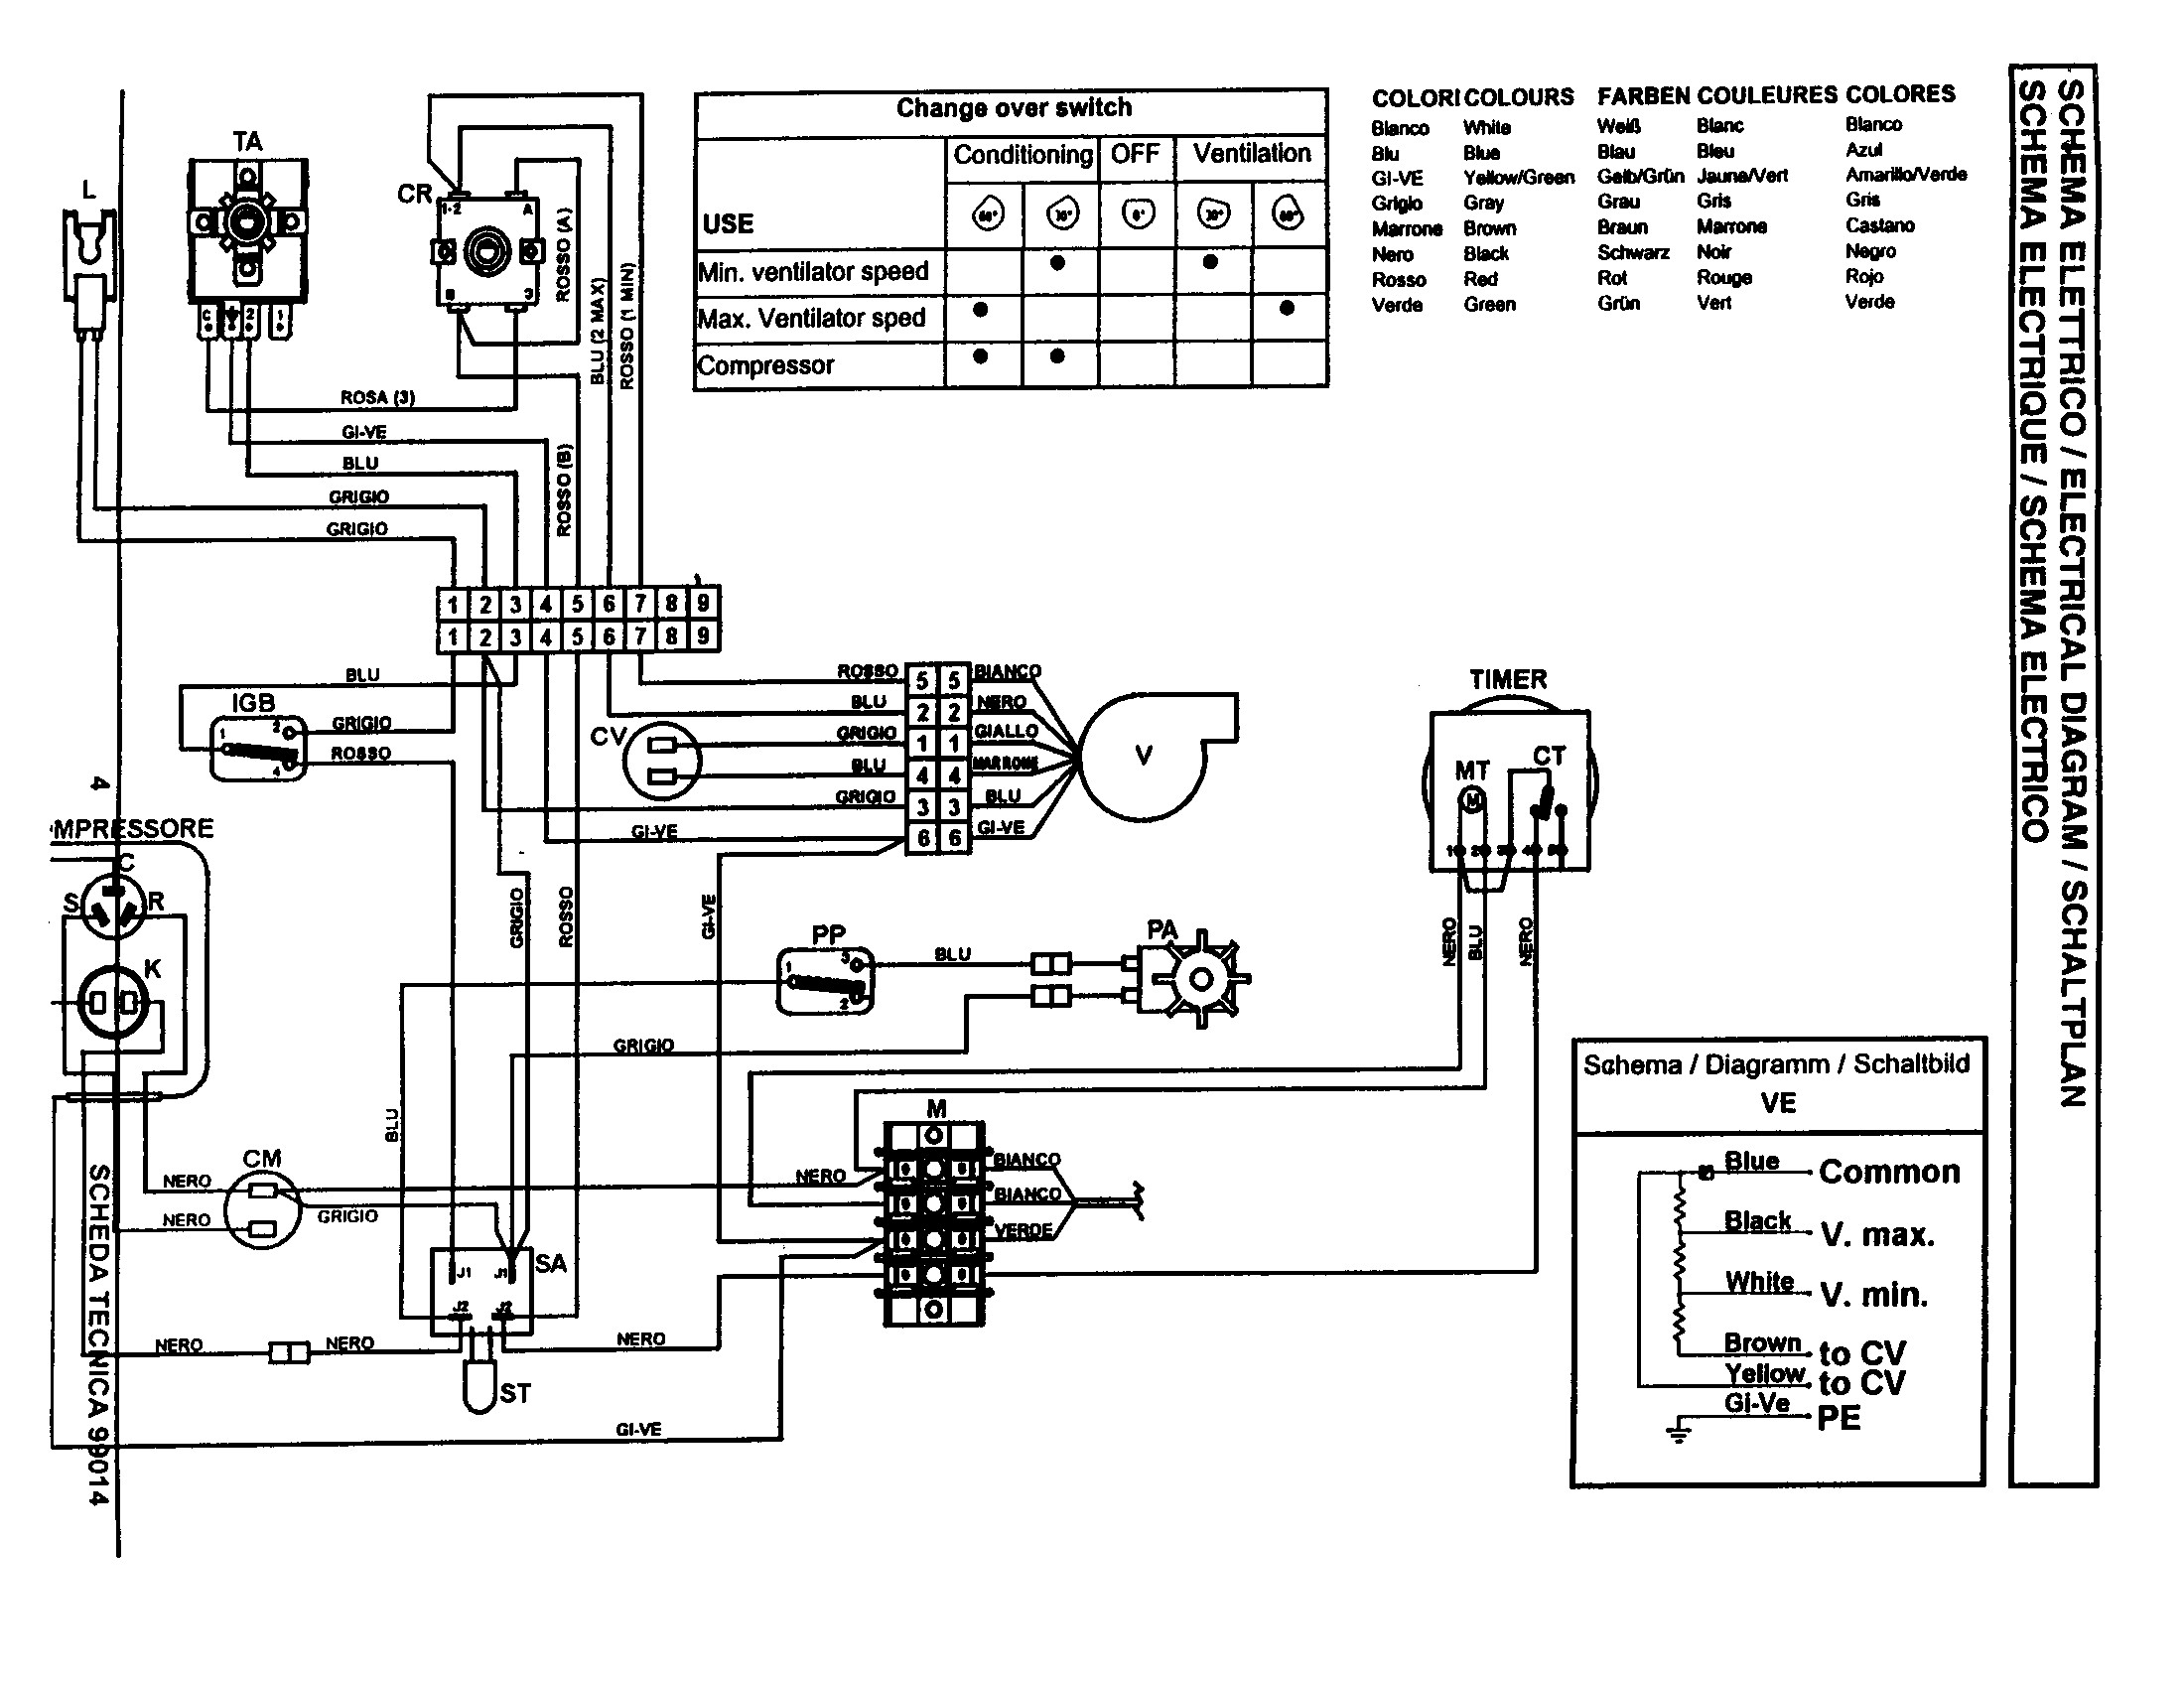 Older York Air Handler Wiring Diagram Library Old Thermostat For Conditioner Schematic Goodman Conditioners Diagrams Carrier